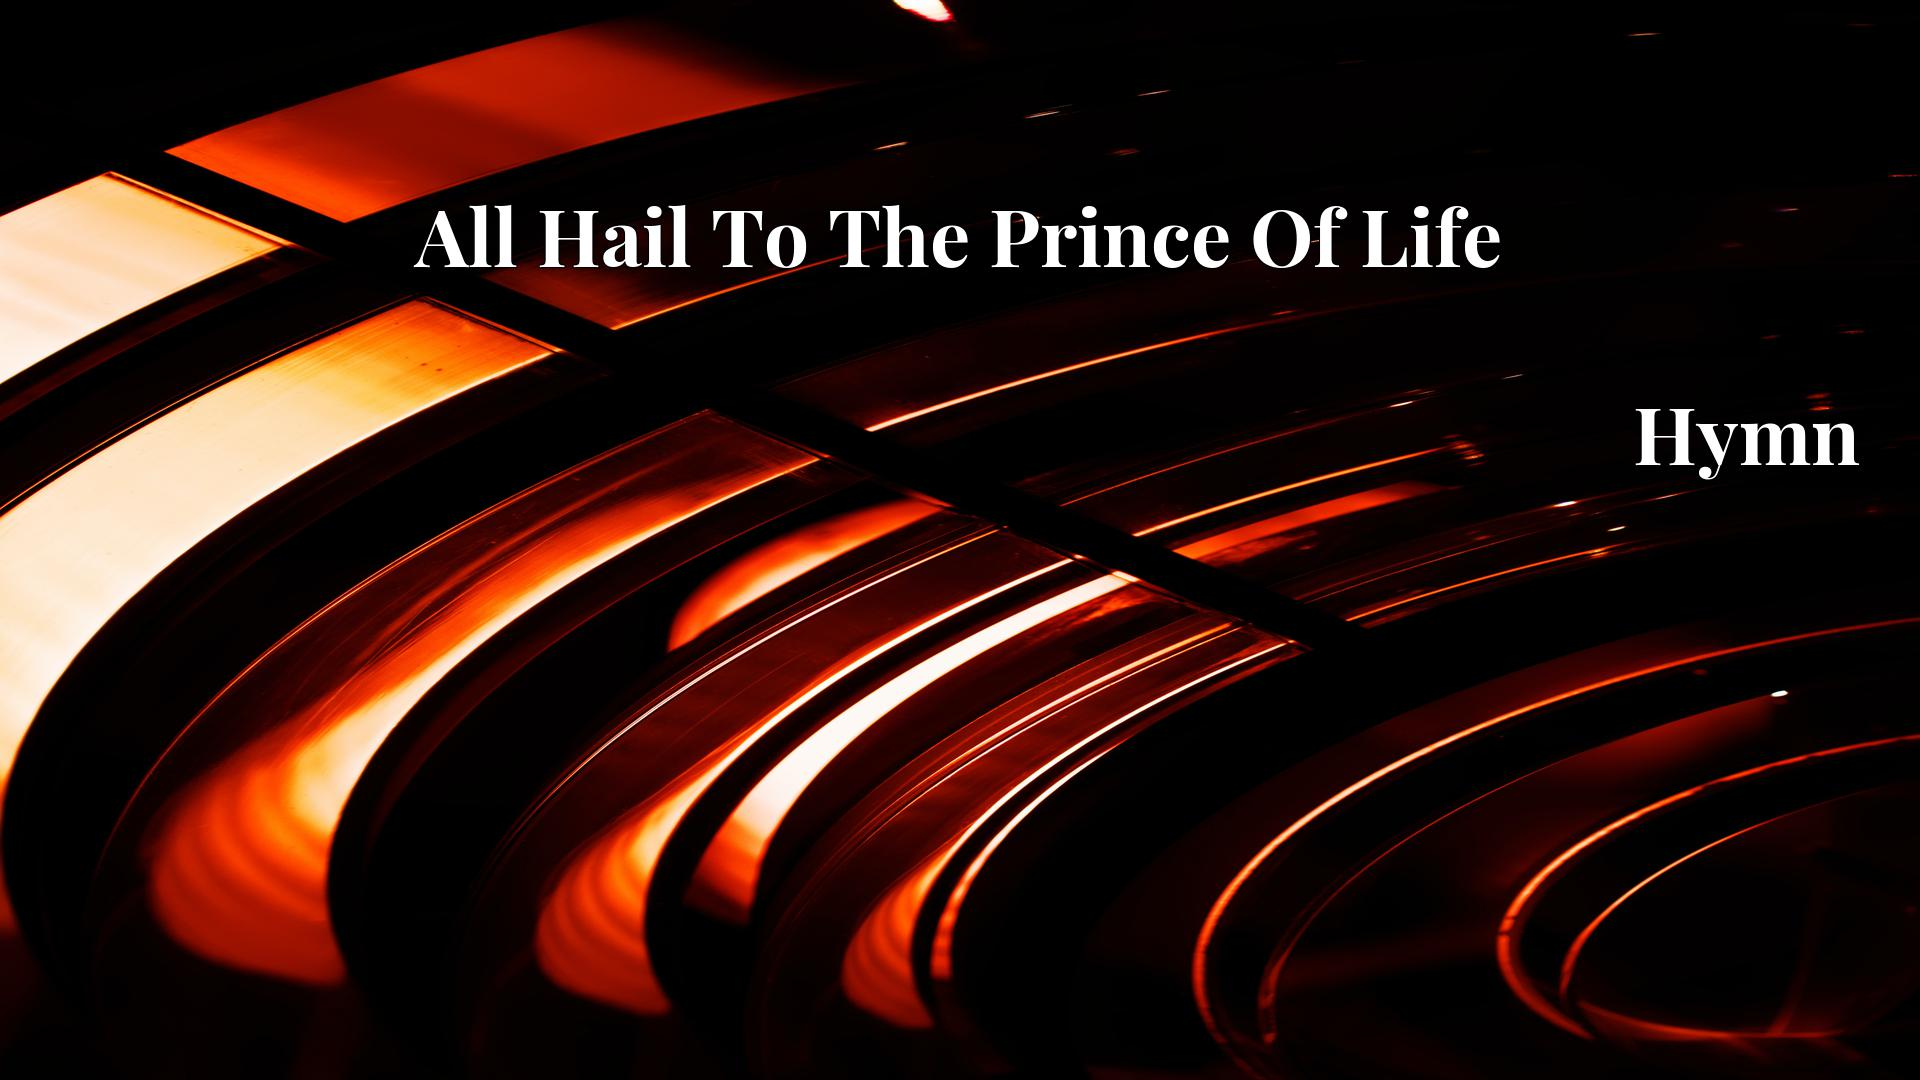 All Hail To The Prince Of Life Hymn